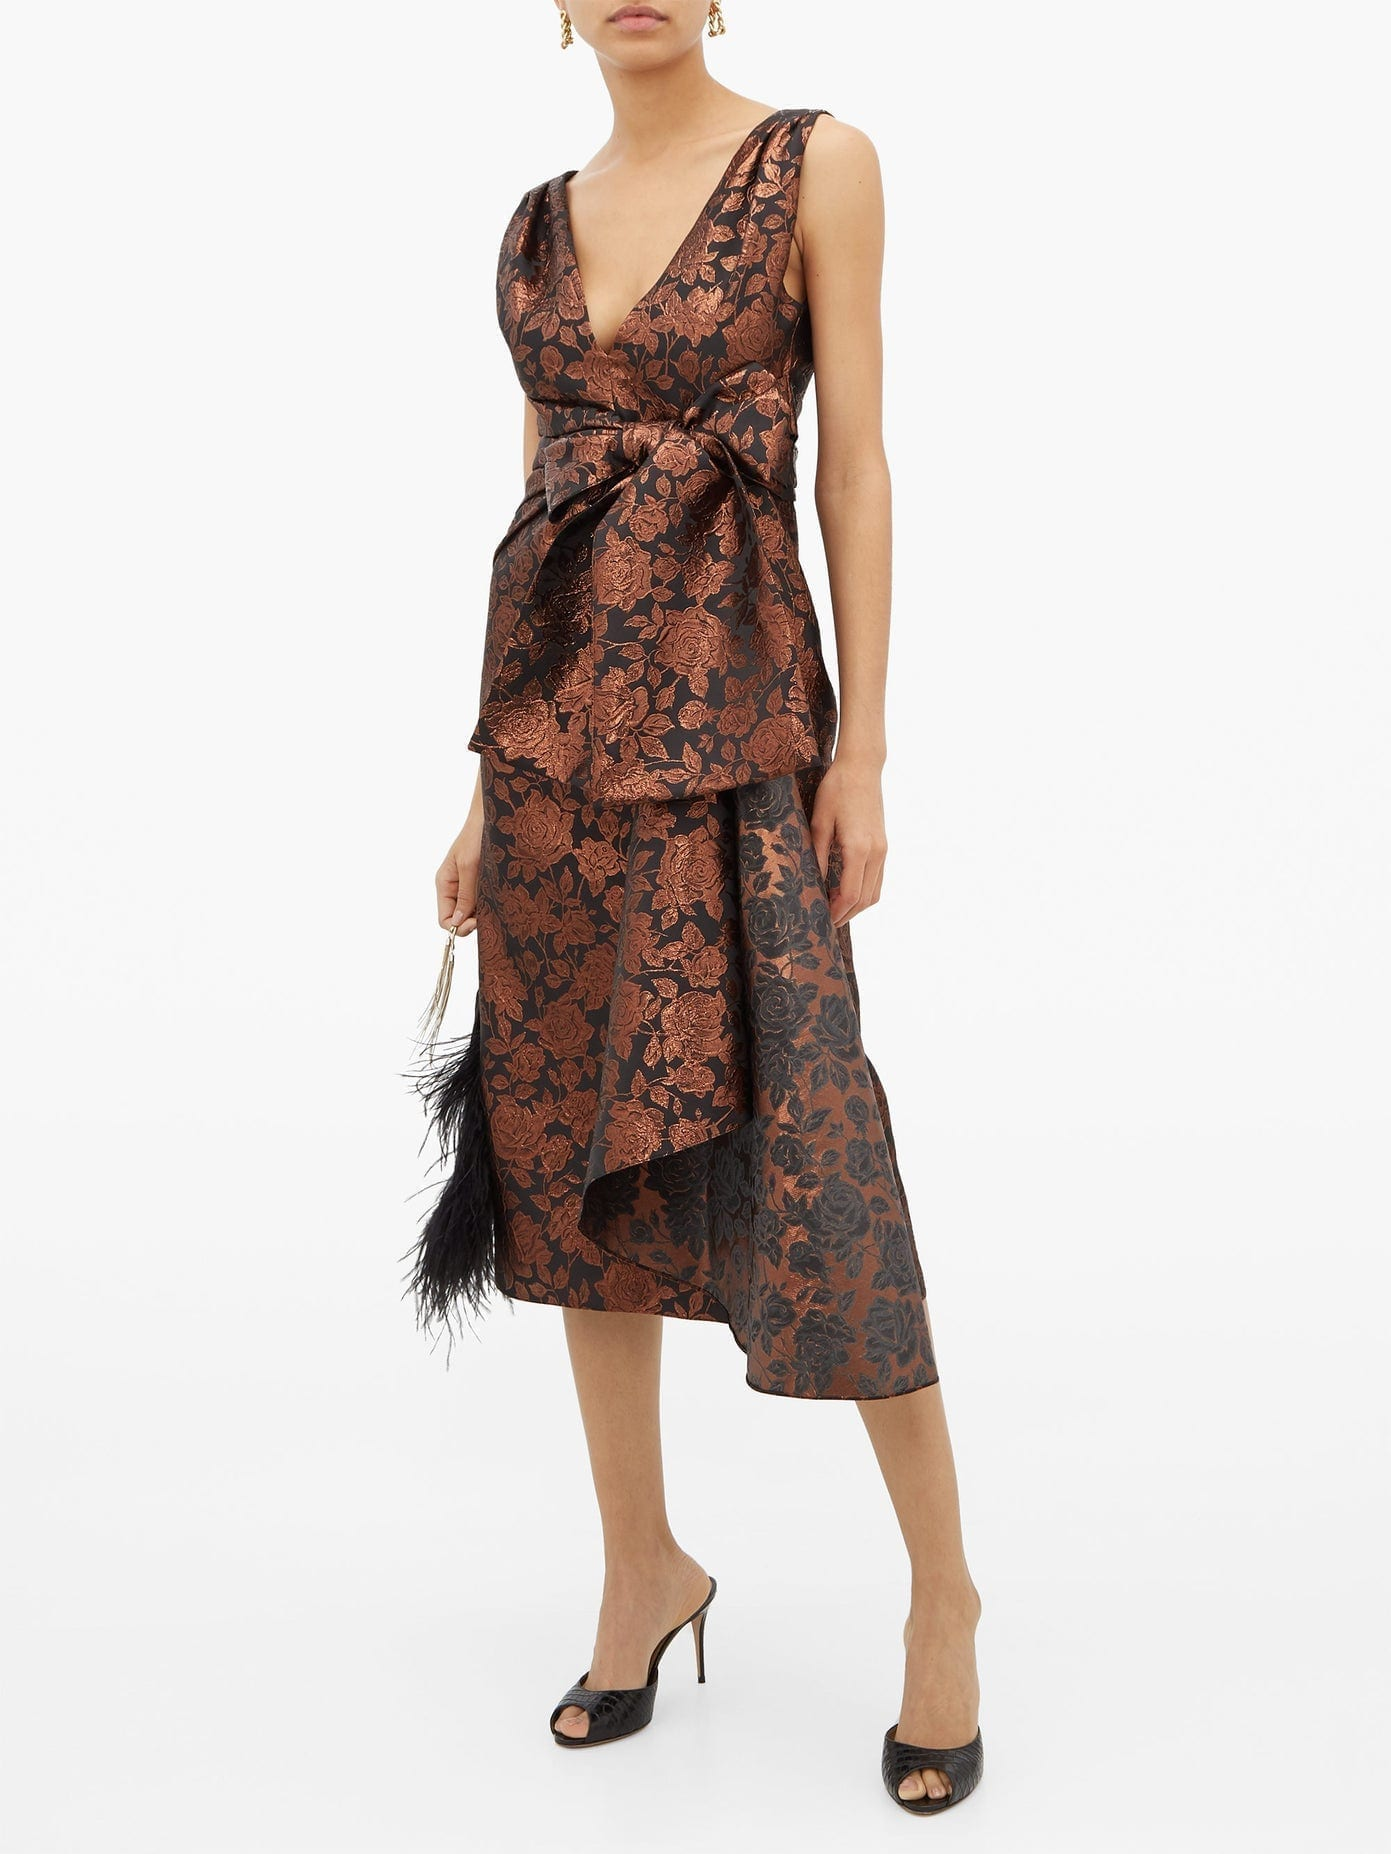 ERDEM Rosalie Sash-waist Floral-brocade Tea Dress